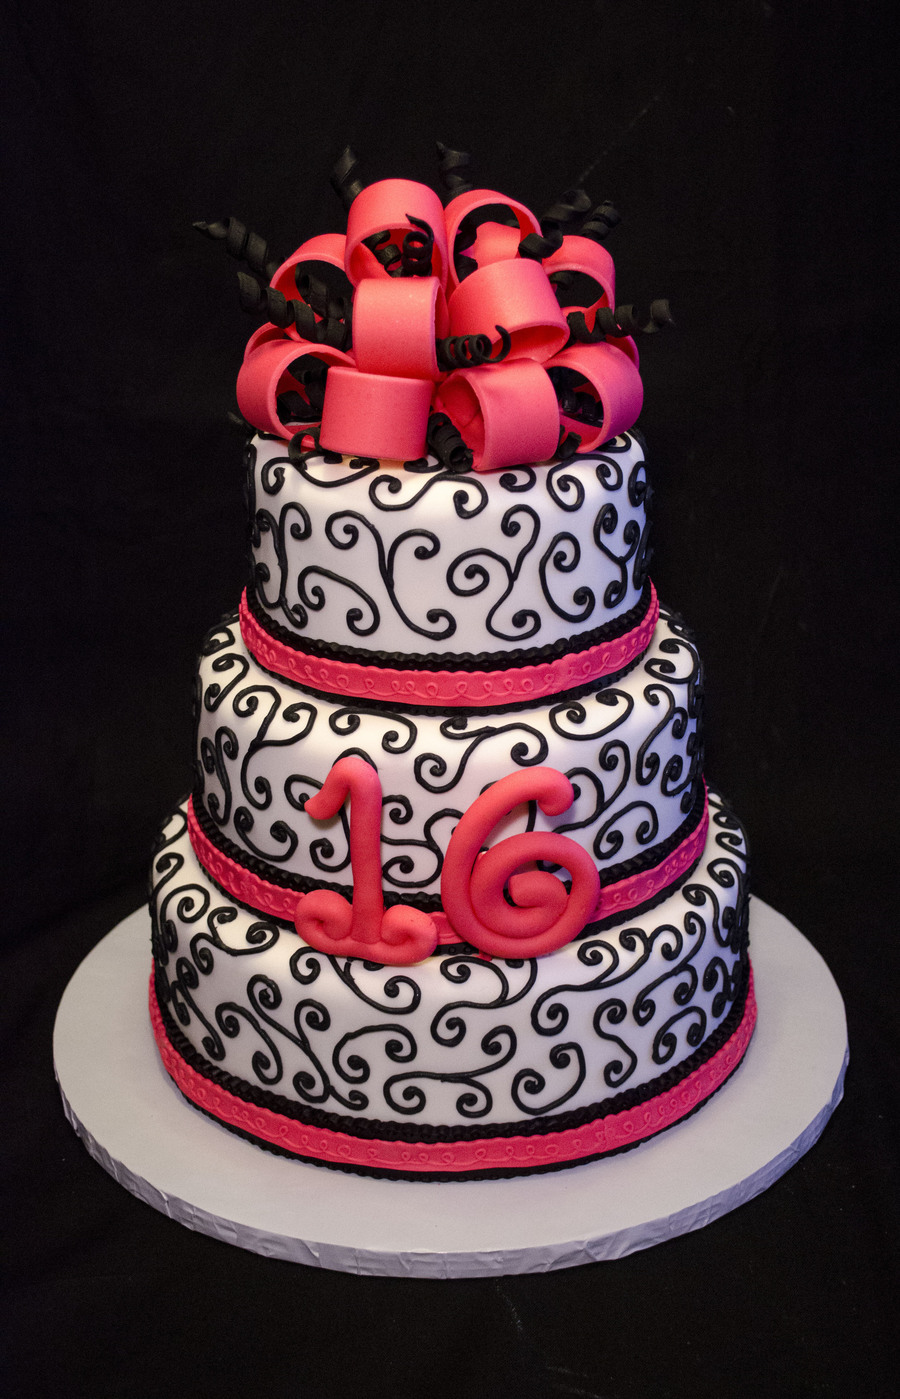 Cake Covered In Royal Icing